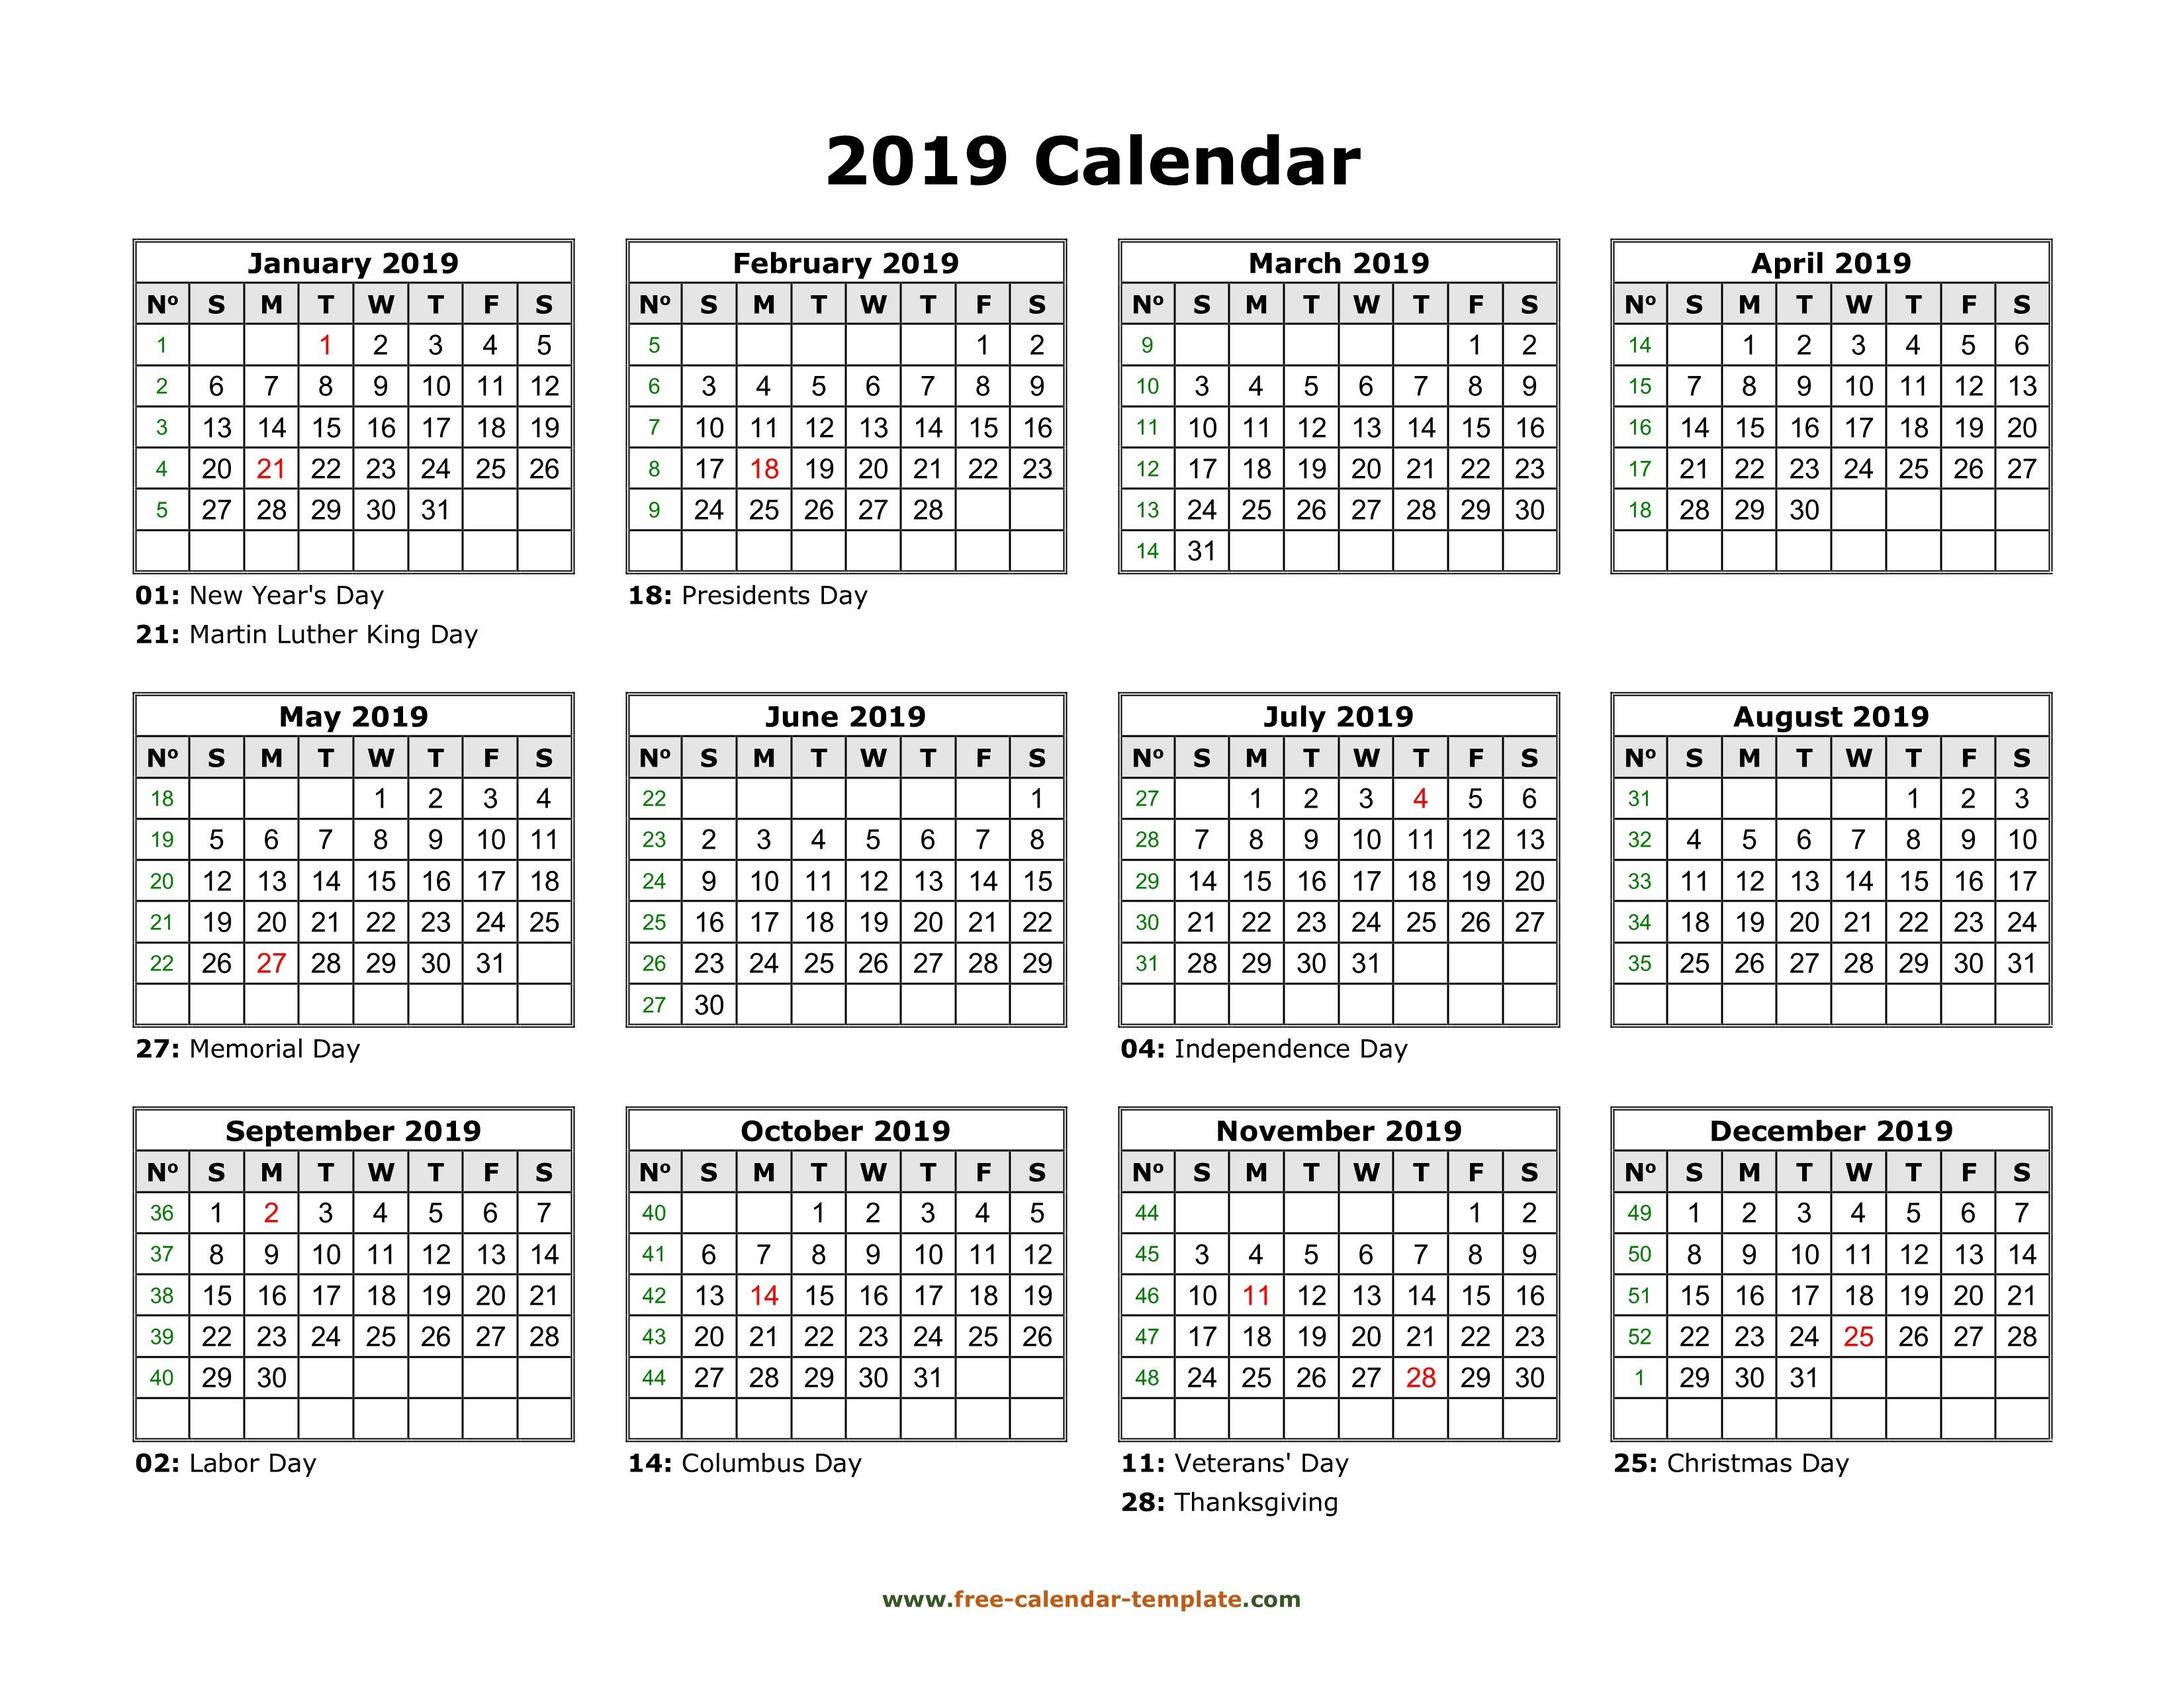 Yearly Calendar 2019 Printable With Federal Holidays | Free-Calendar Calendar 2019 View